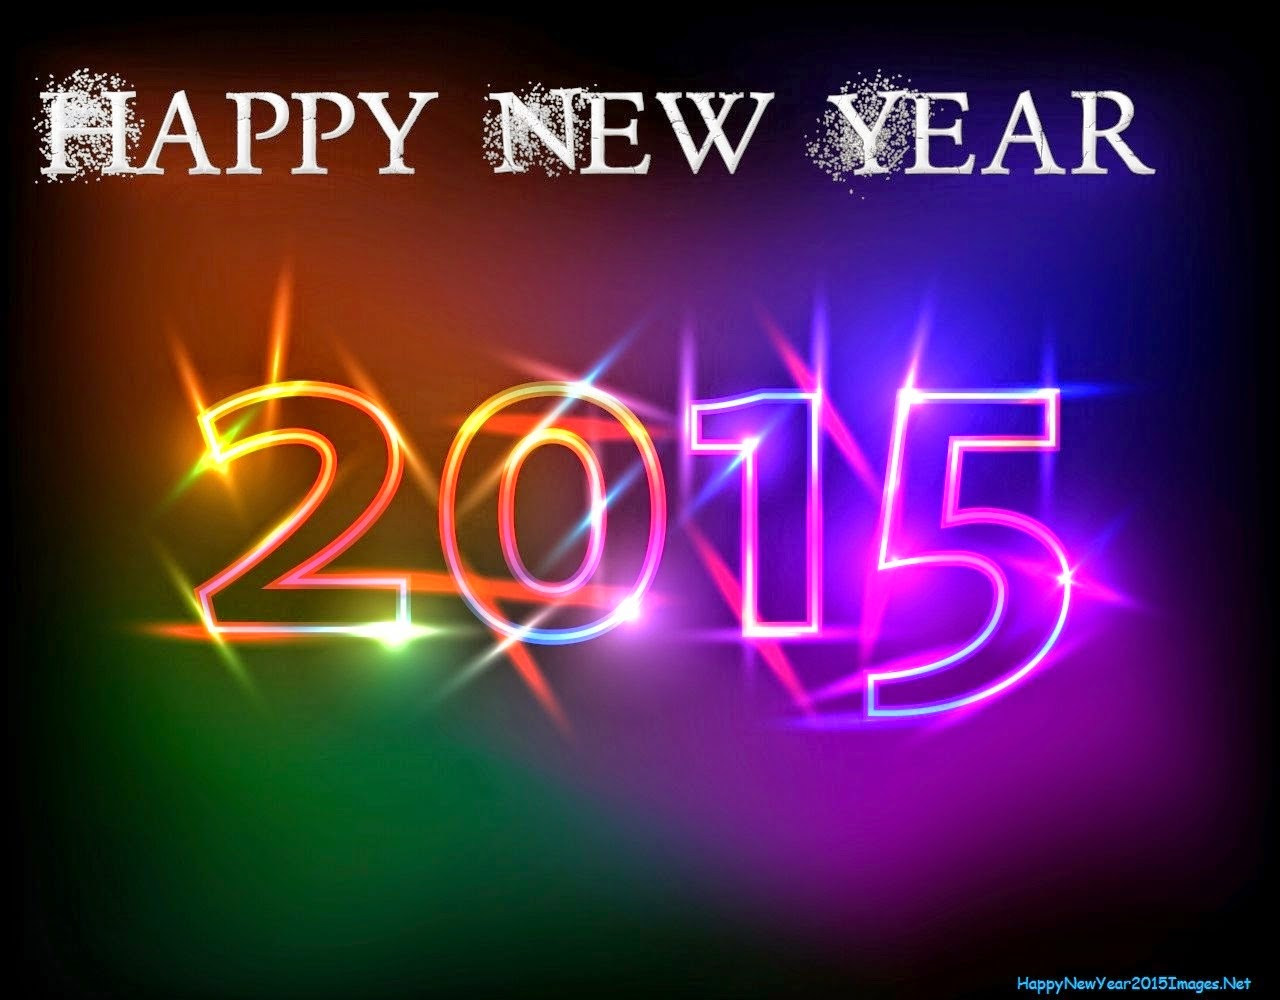 Happy new year 2015 HD Wallpaper for wishes